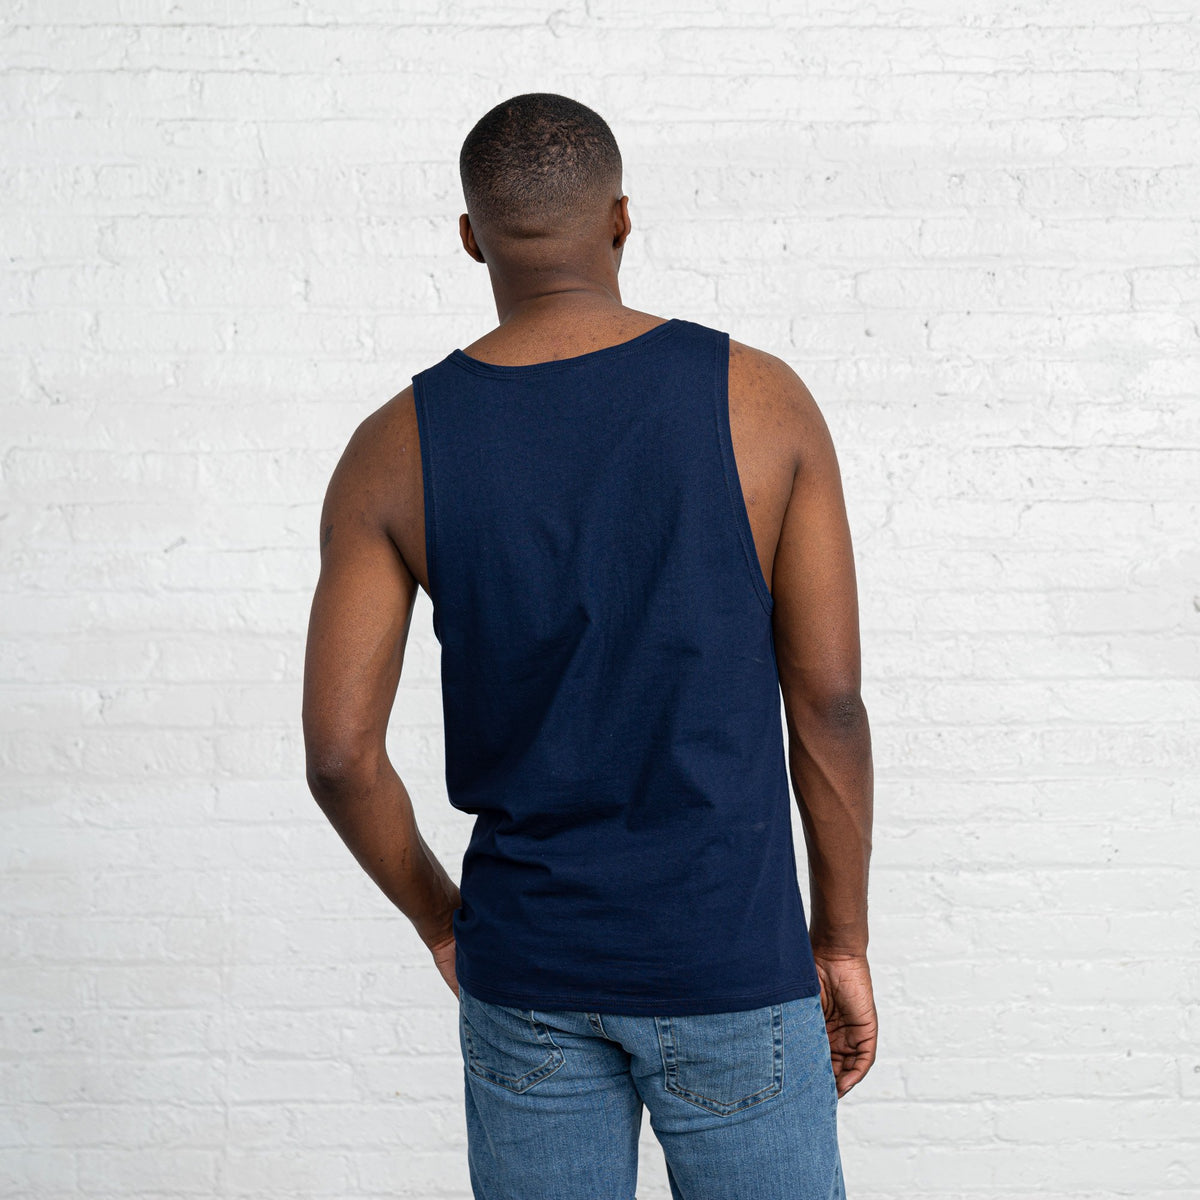 Color:Navy Combed Cotton Men's Tank Tops